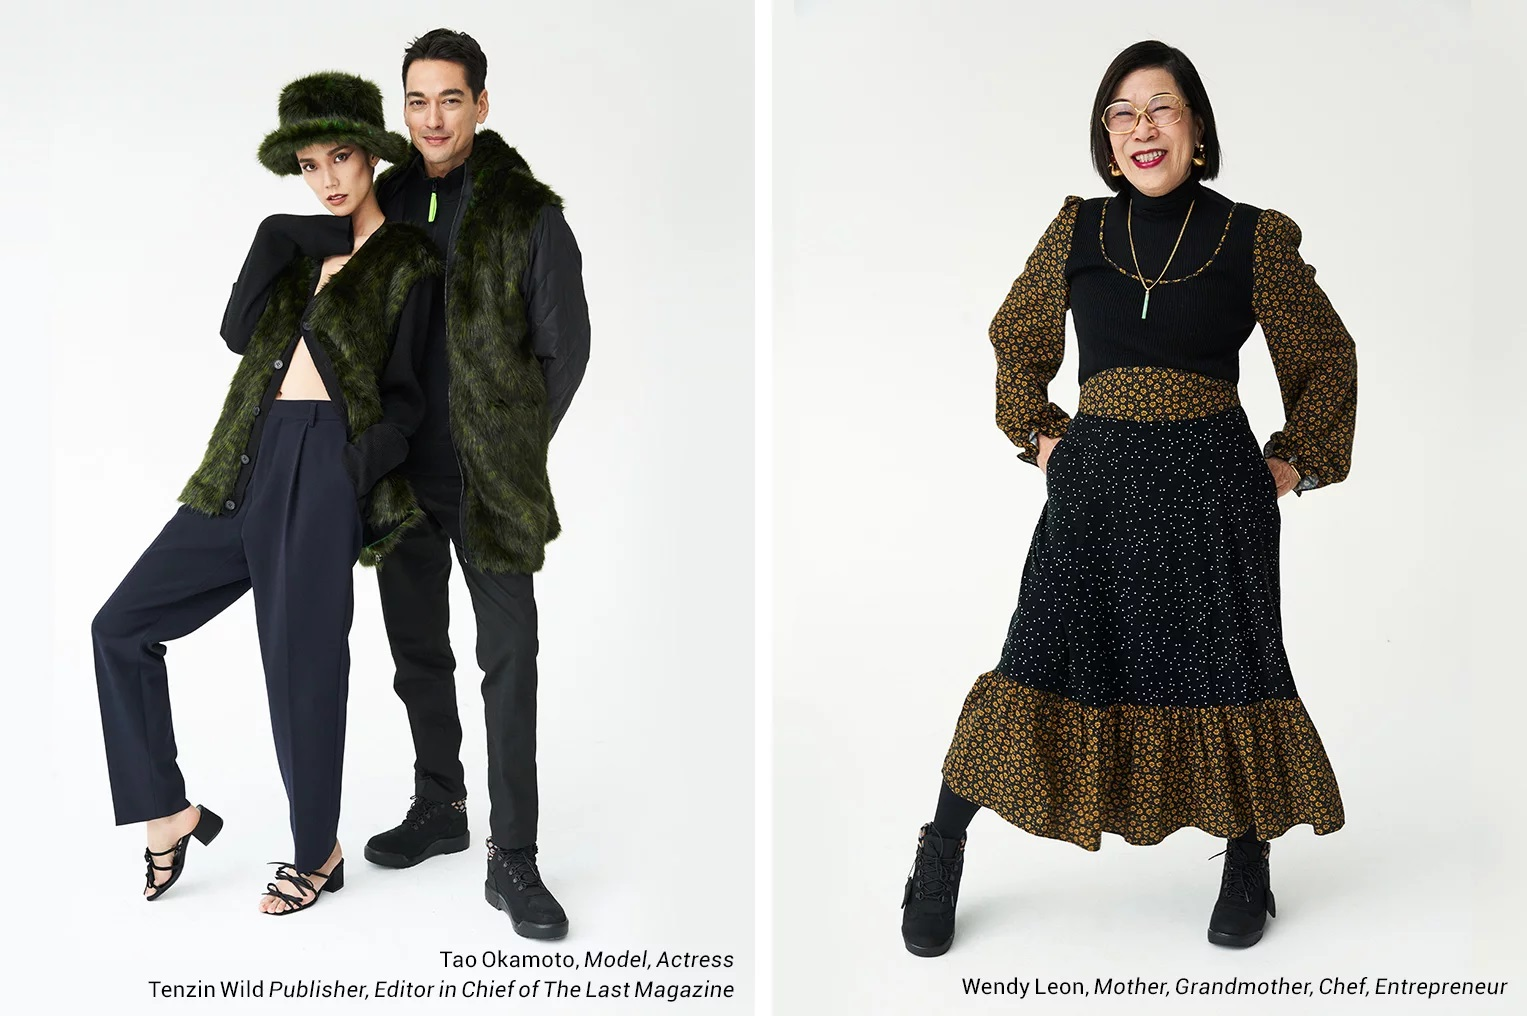 opening ceremony fall winter 2019 lookbook features an all-asian cast inspired by hong kong icons anita mui and leslie cheung - 03.jpg